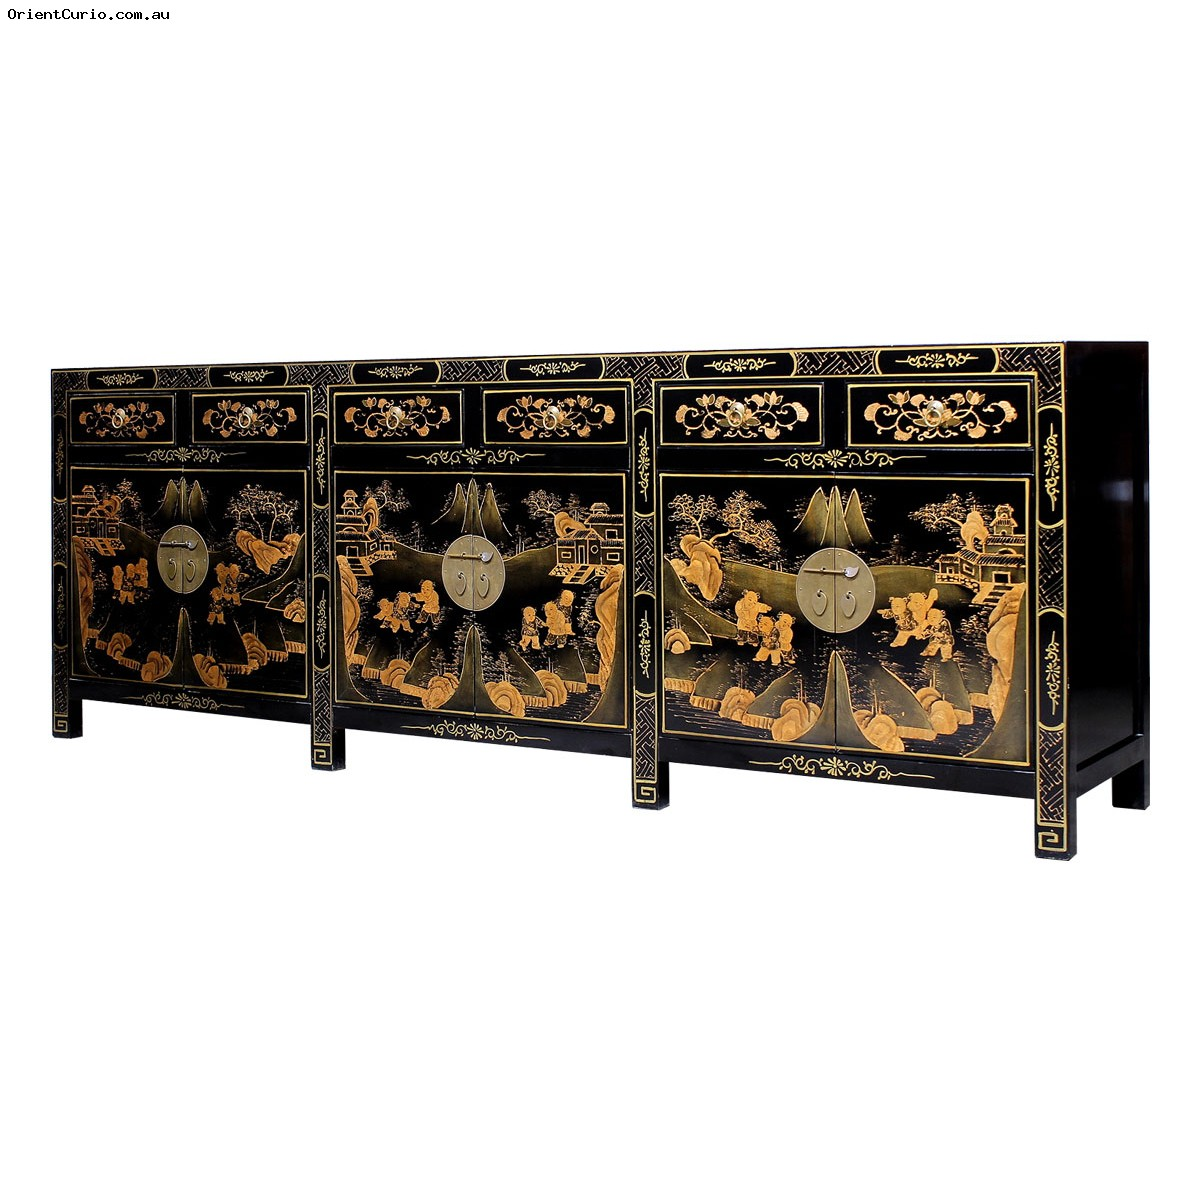 Picture of: Black Lacquer Gold Painted Long Buffet Sideboard With 6 Drawer 6 Door Orient Curio Asian Furniture Home Decor Melbourne